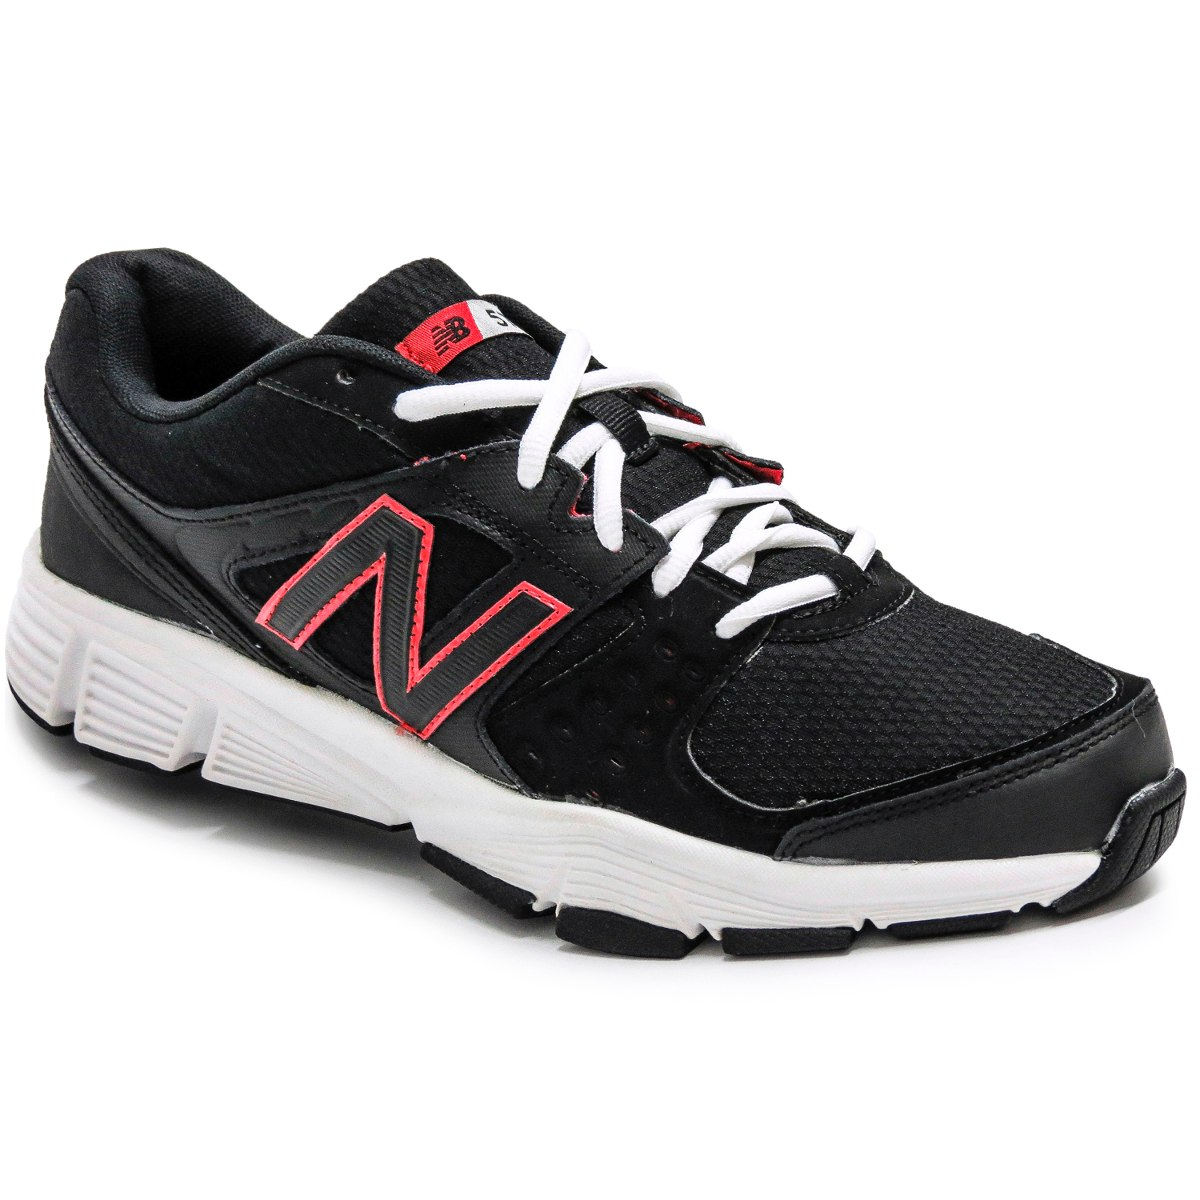 New Balance Zapatillas New Balance Mx577 Confort Amortiguación